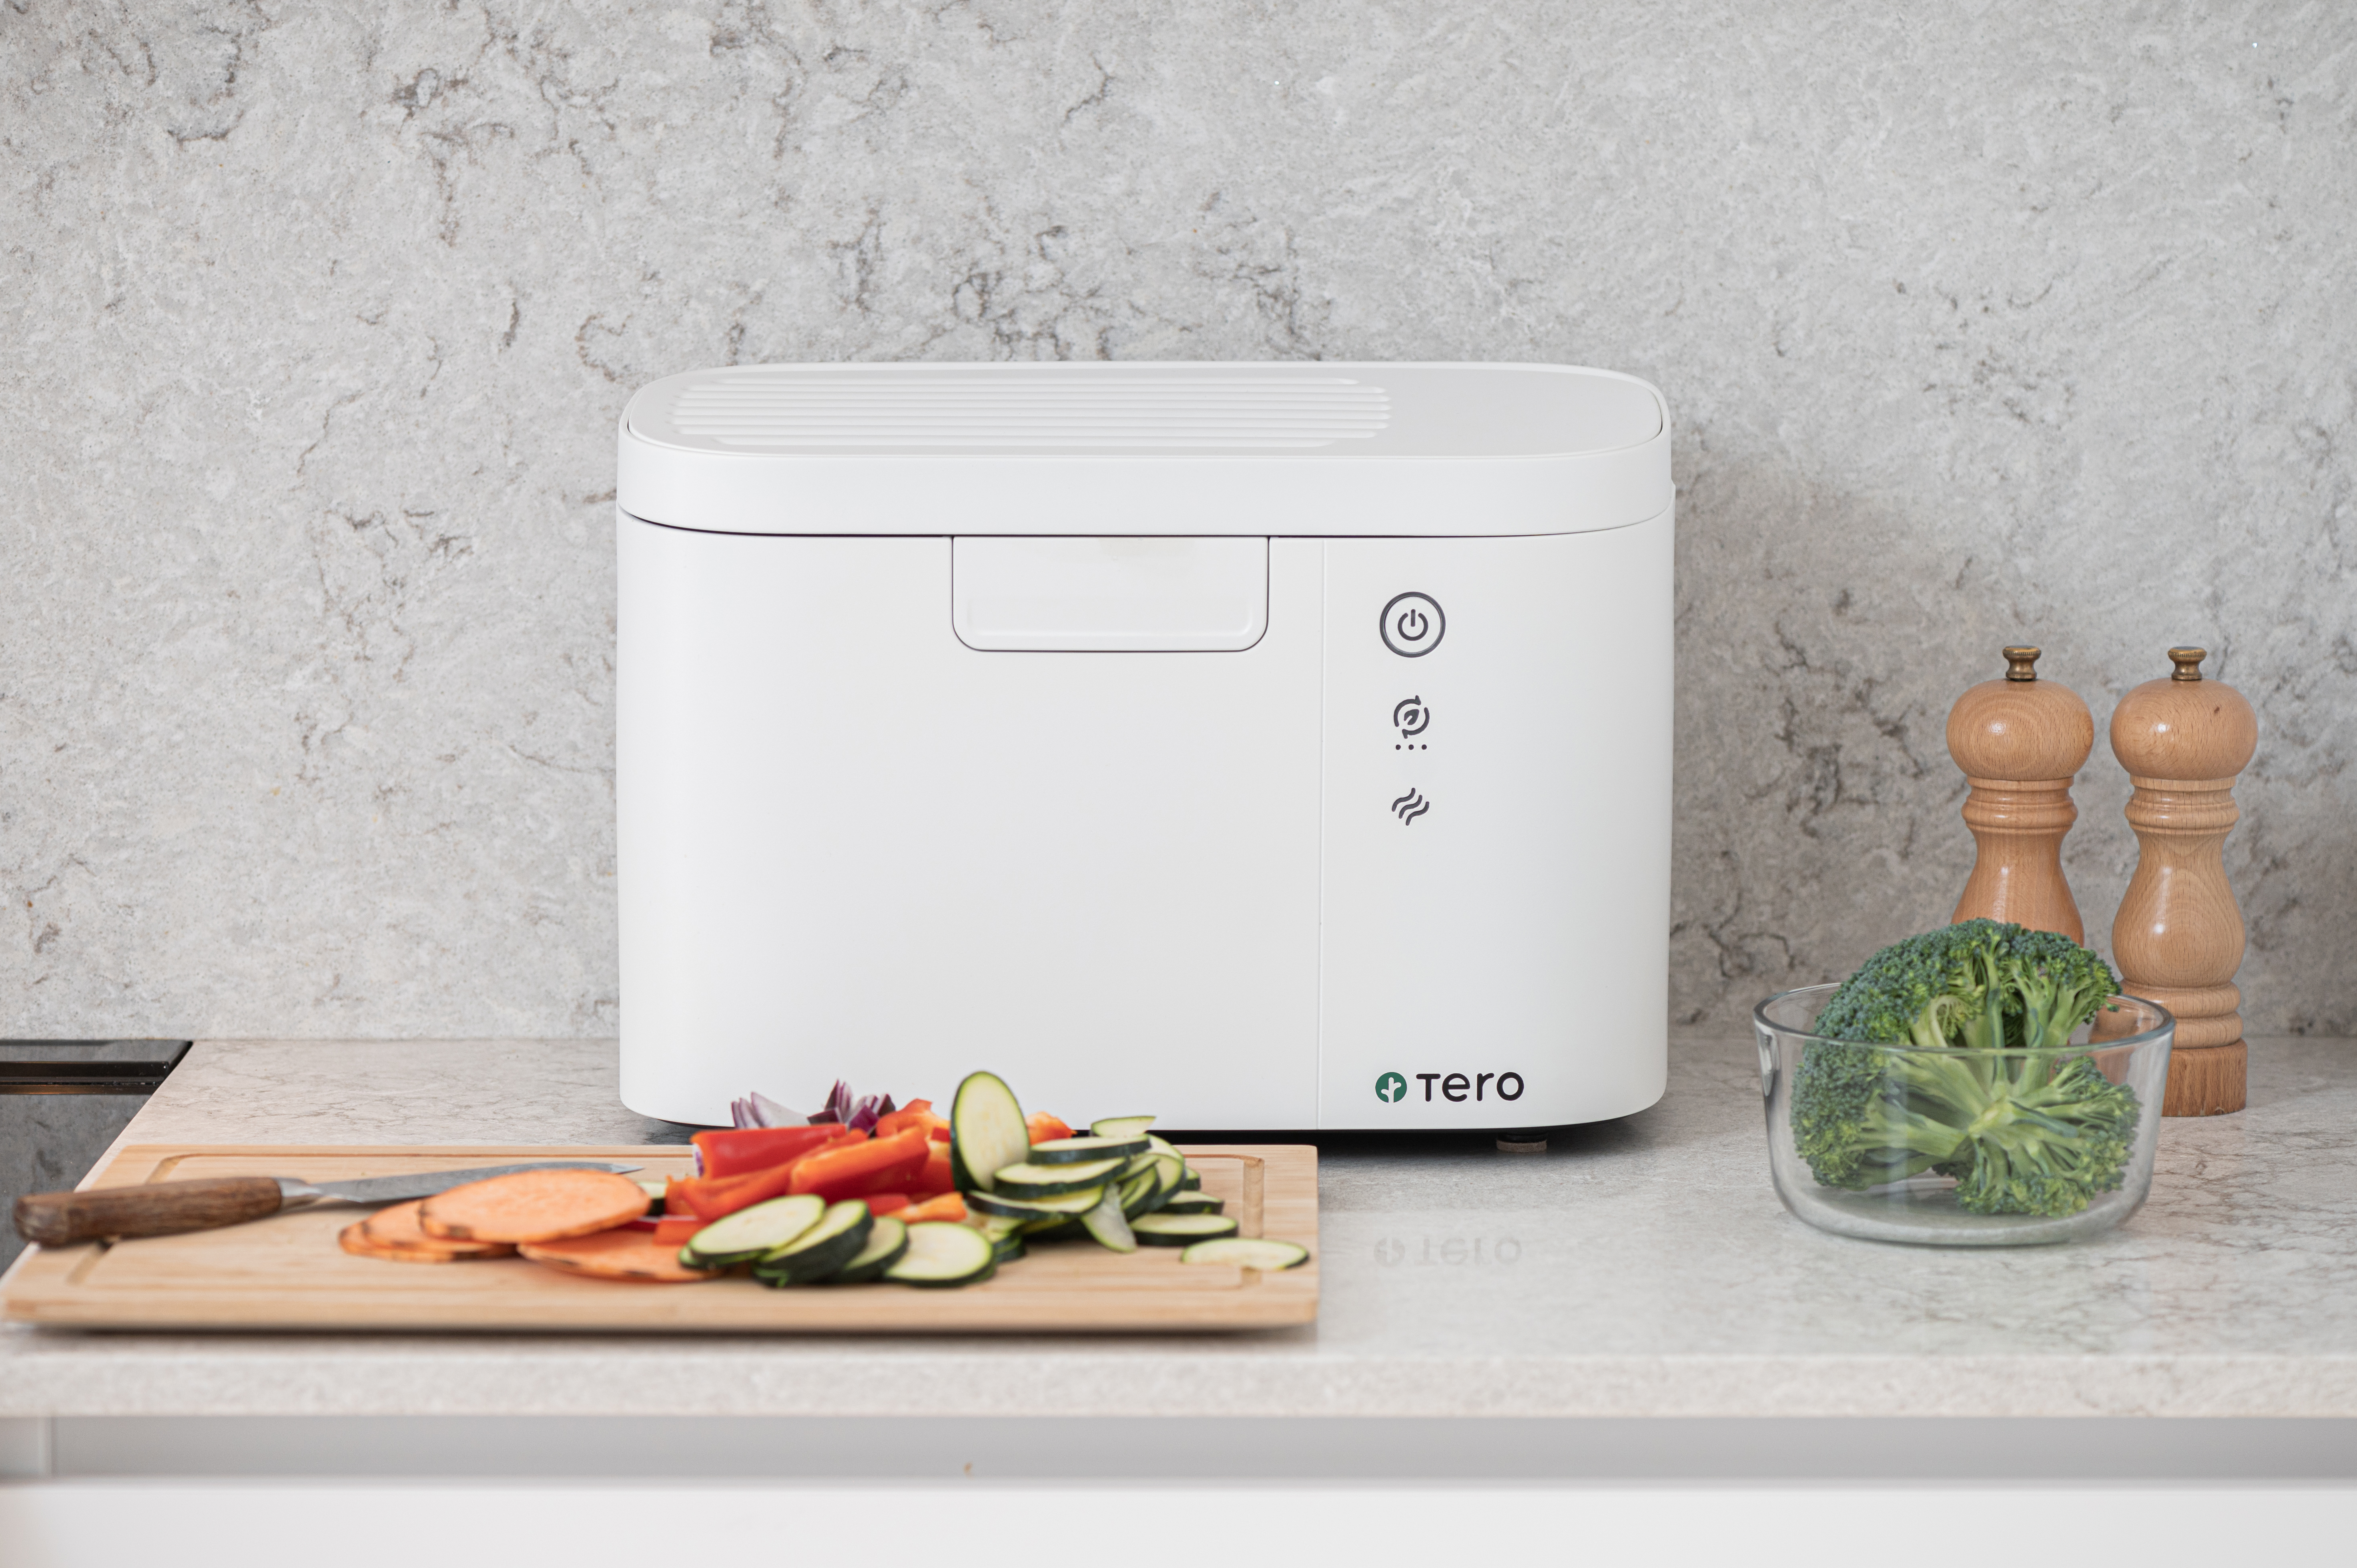 Tero food waste recycler on a counter